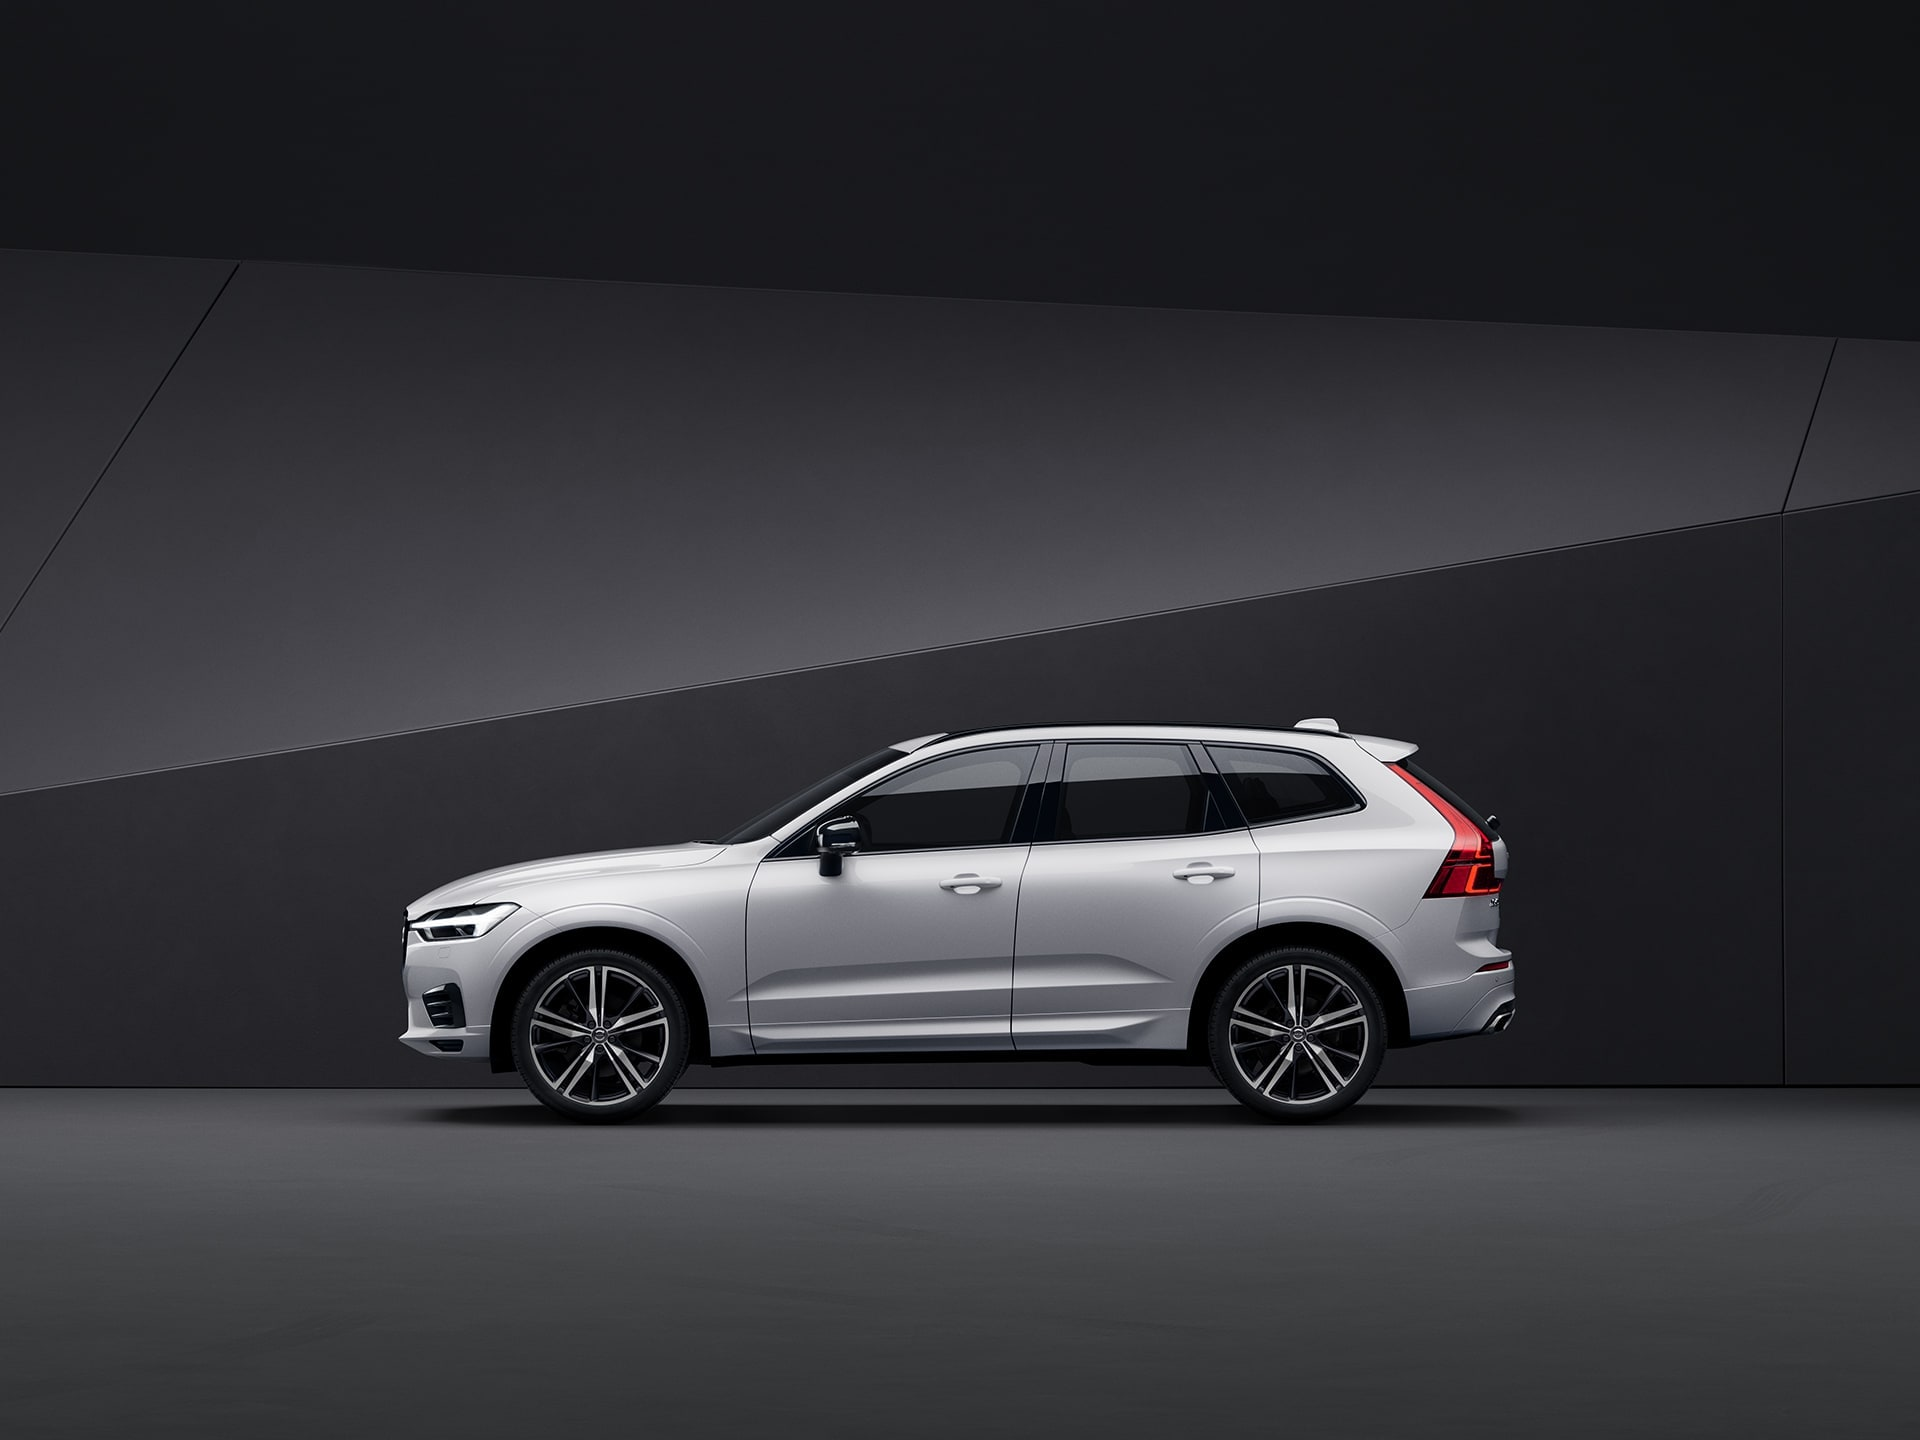 A white Volvo XC60 SUV parked in a black surrounding.